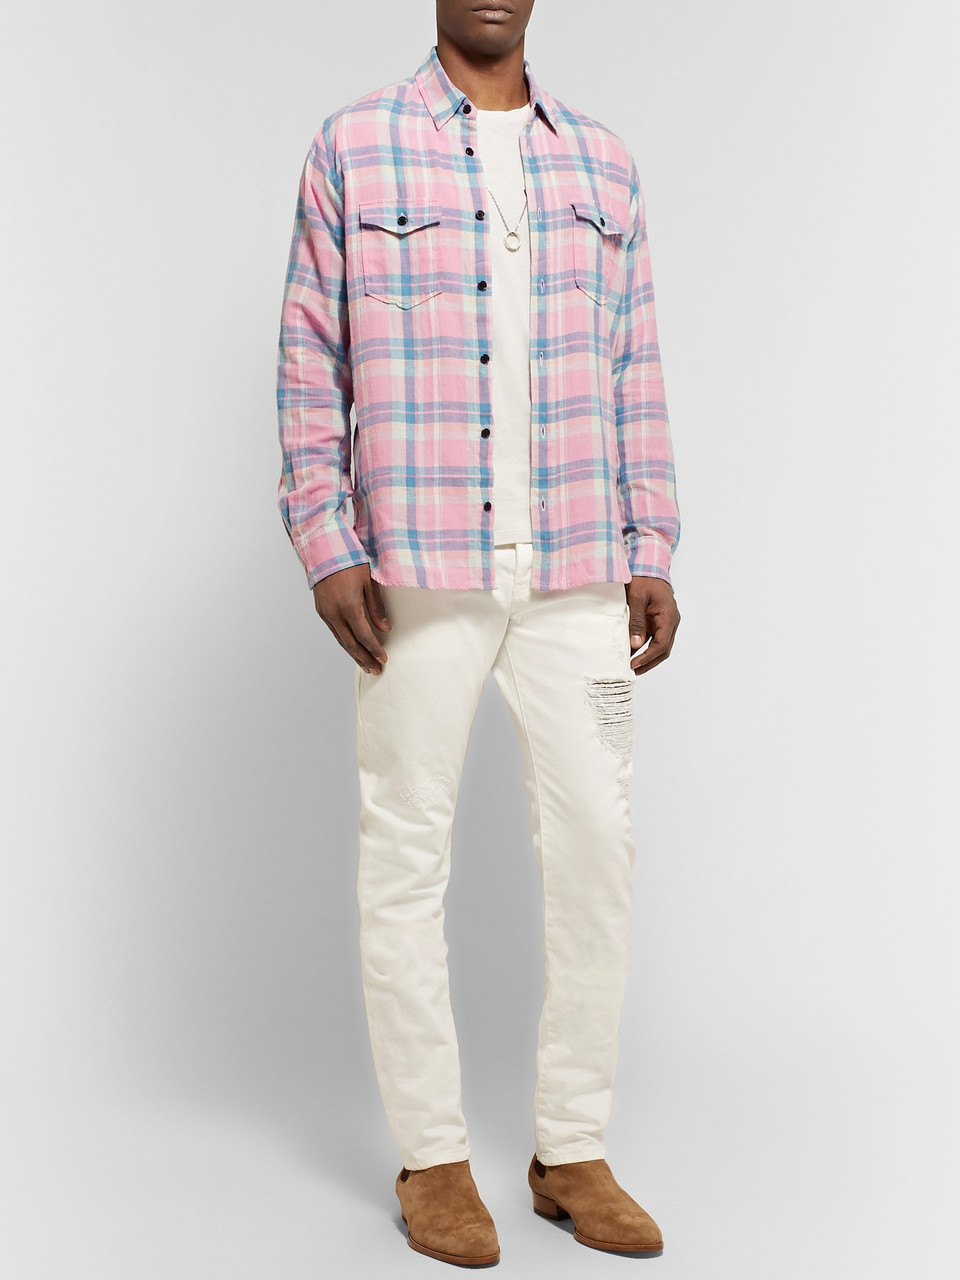 SAINT LAURENT Checked Slub Cotton, Linen and Ramie-Blend Shirt